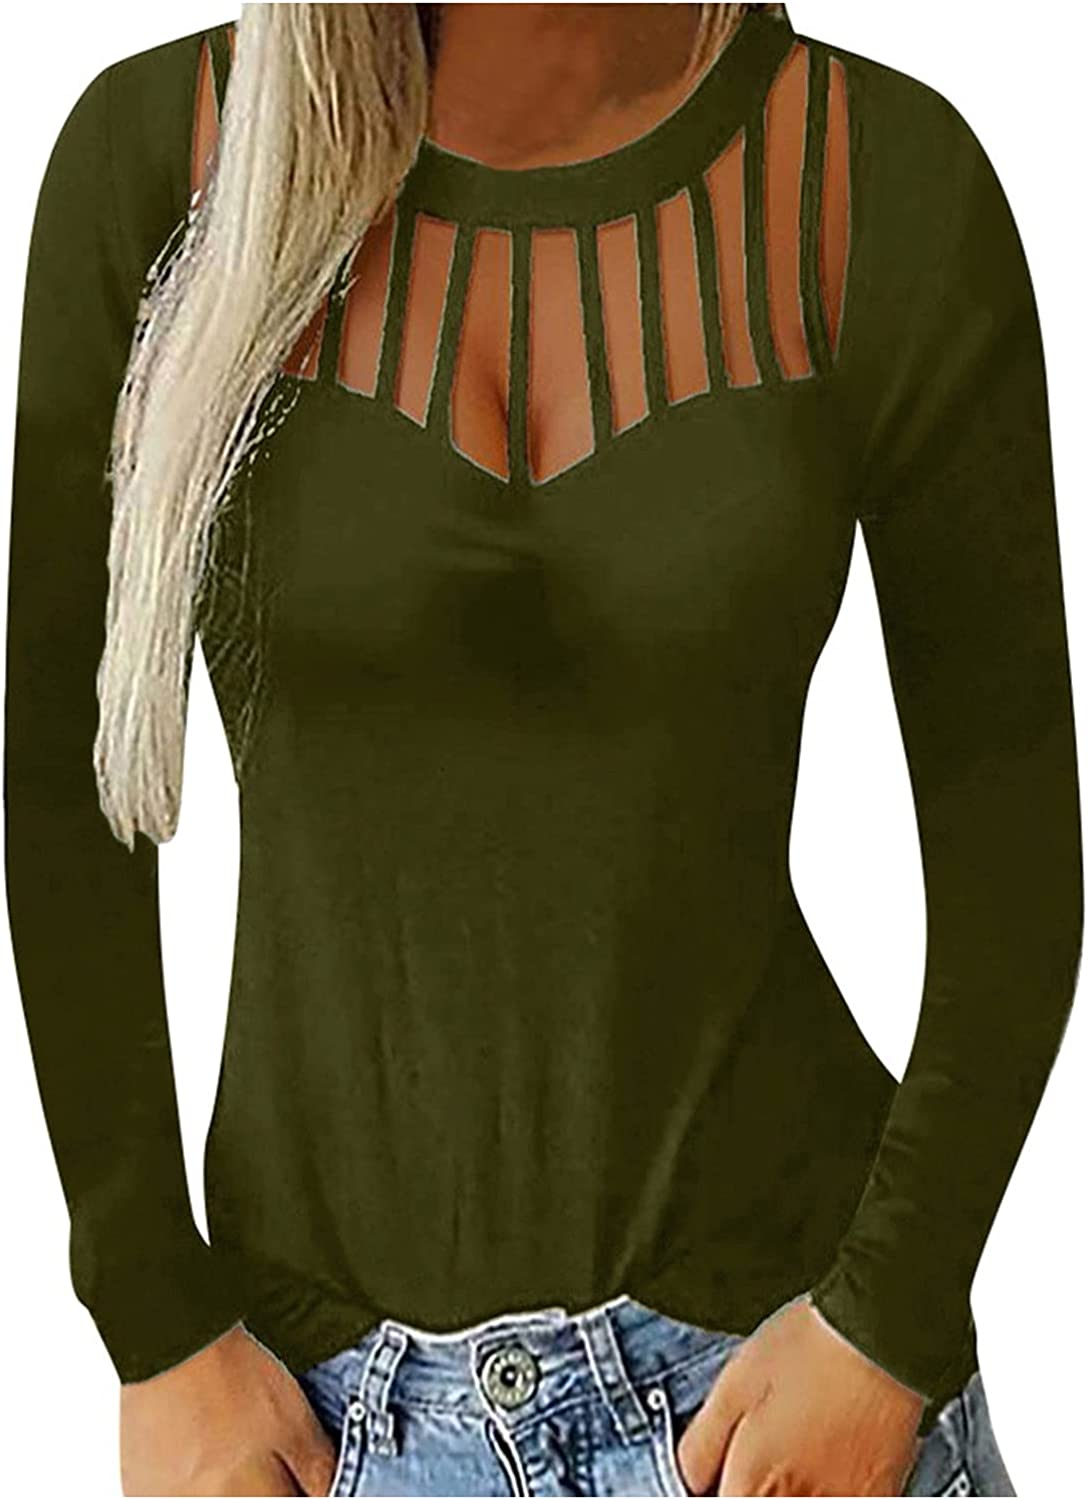 SZITOP Women Tops, Solid Sexy Hollow Autumn Winter Fashion Casual Long Sleeve Round Neck Shirt Sweater Sweatshirt Pullover